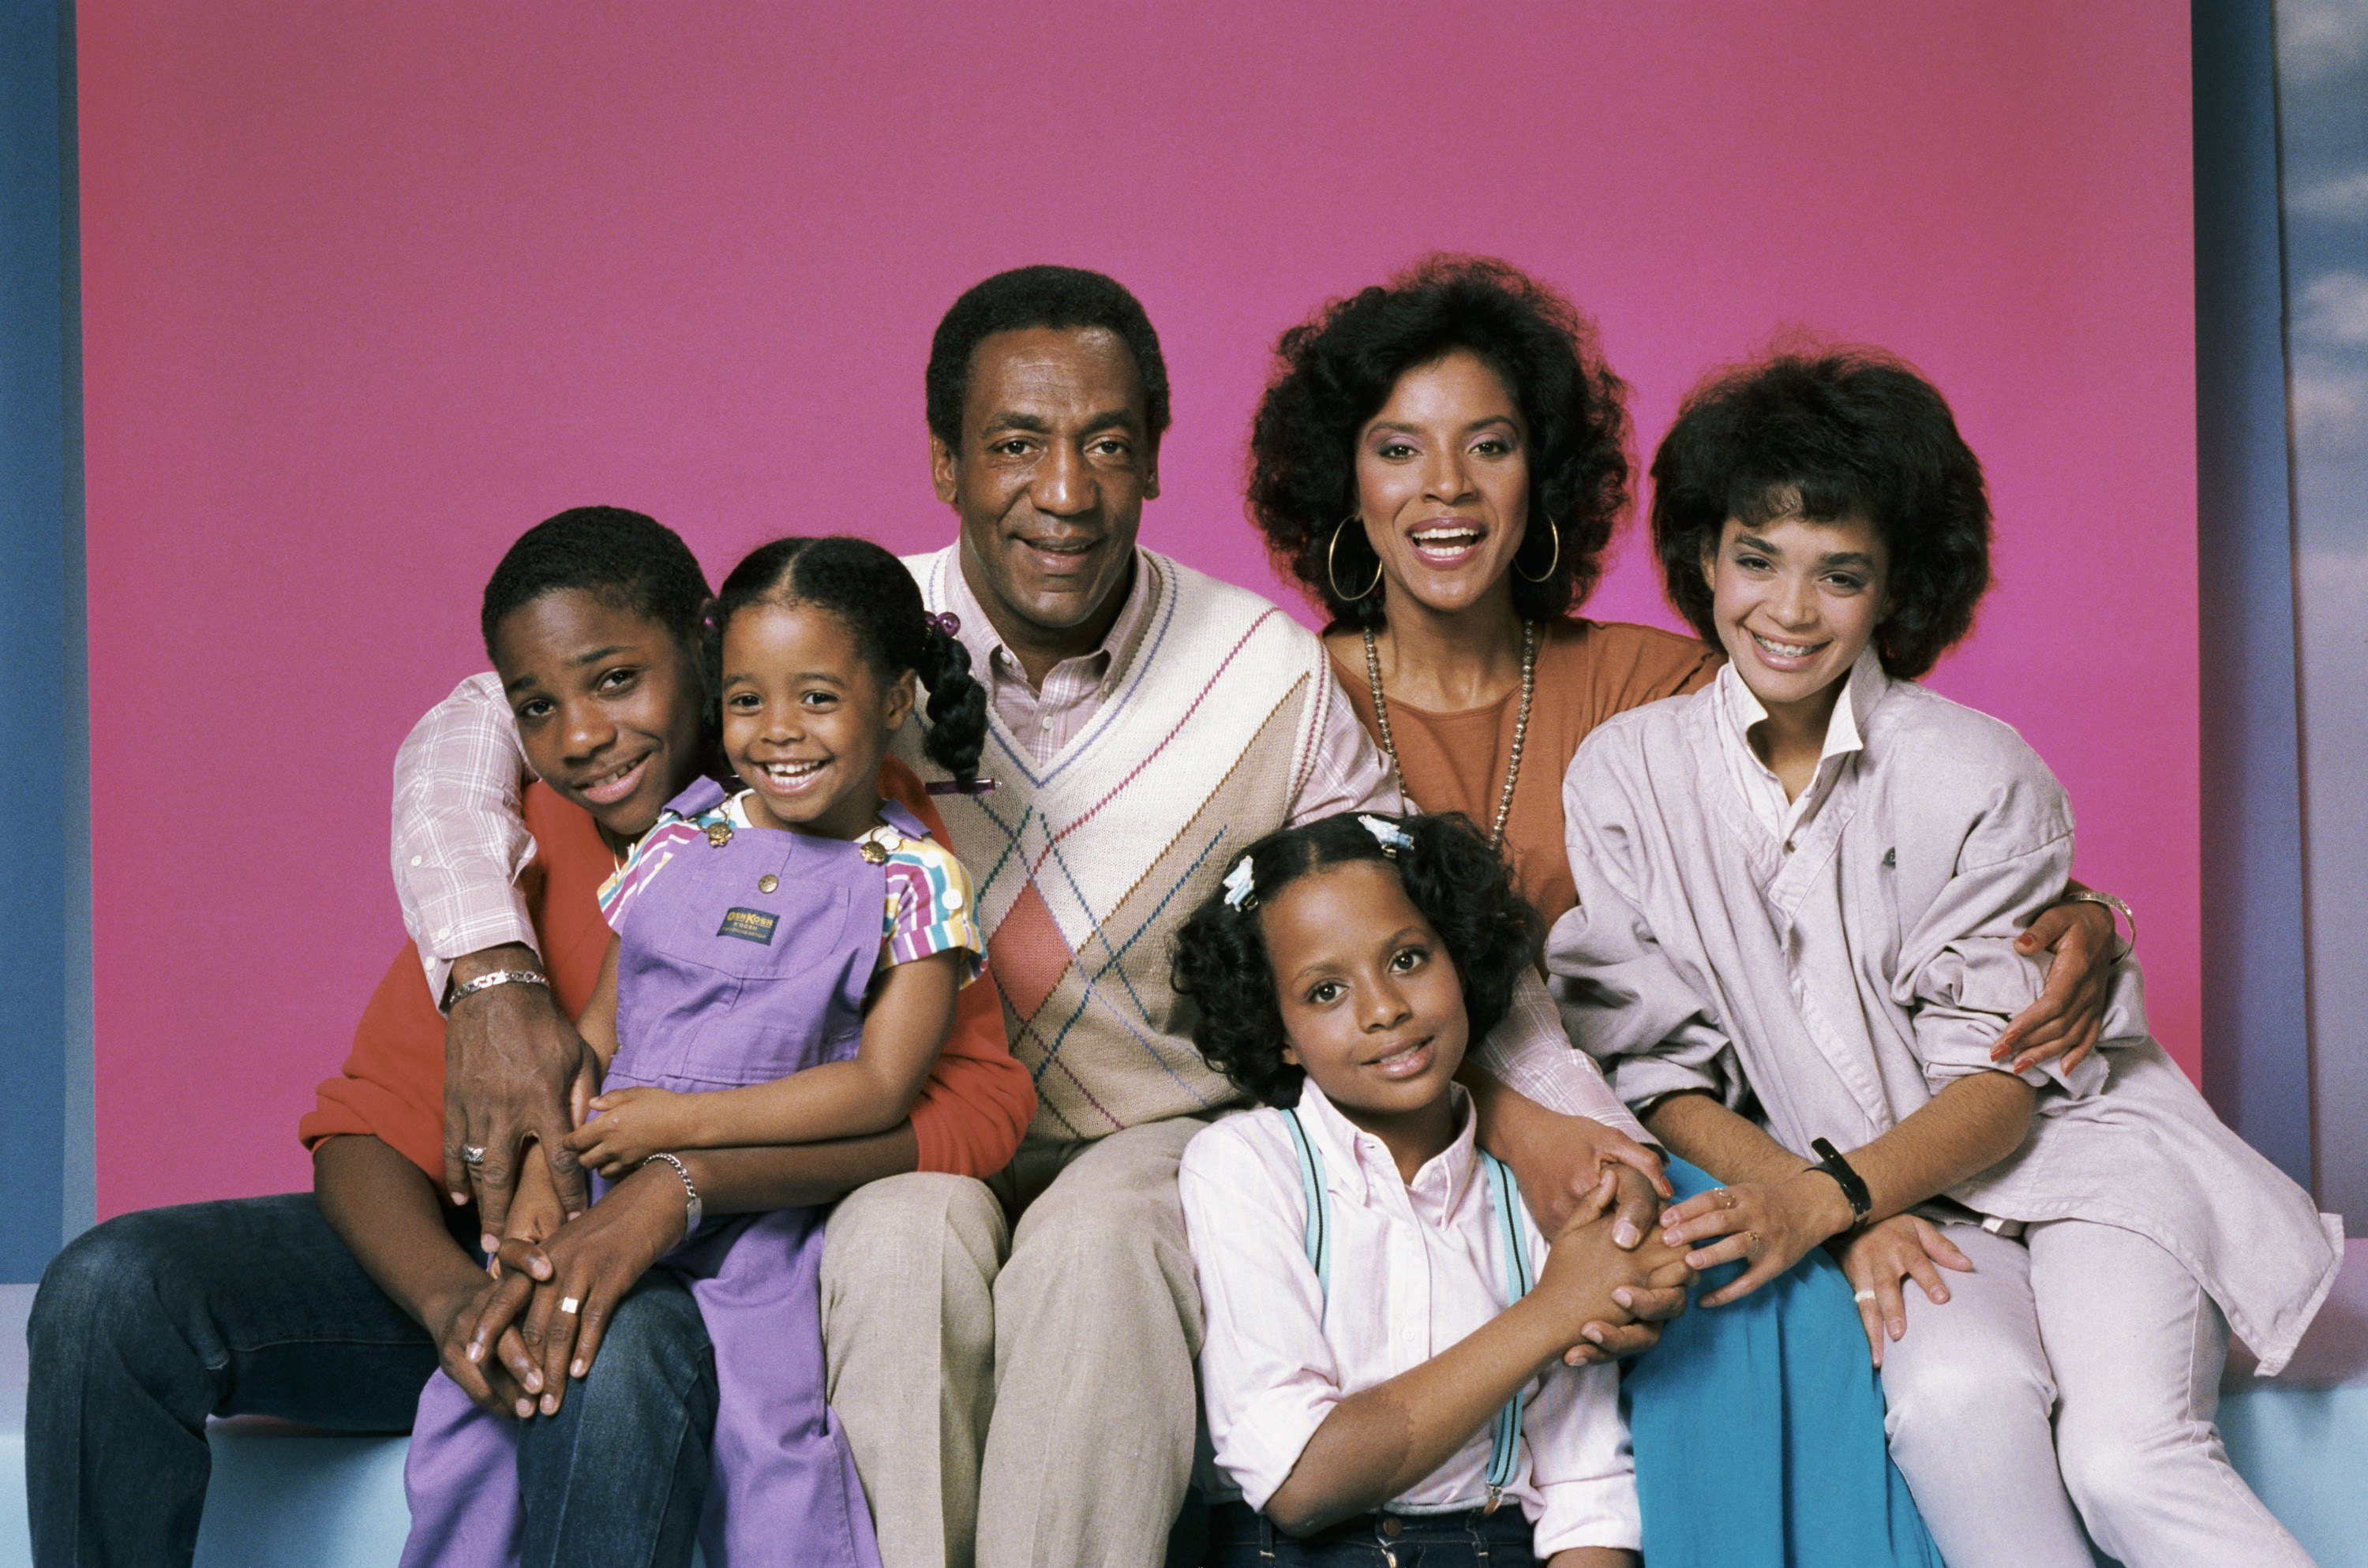 """The cast of """"The Cosby Show"""" in a promotional photoshoot for the show's first season in 1984   Photo: Getty Images"""